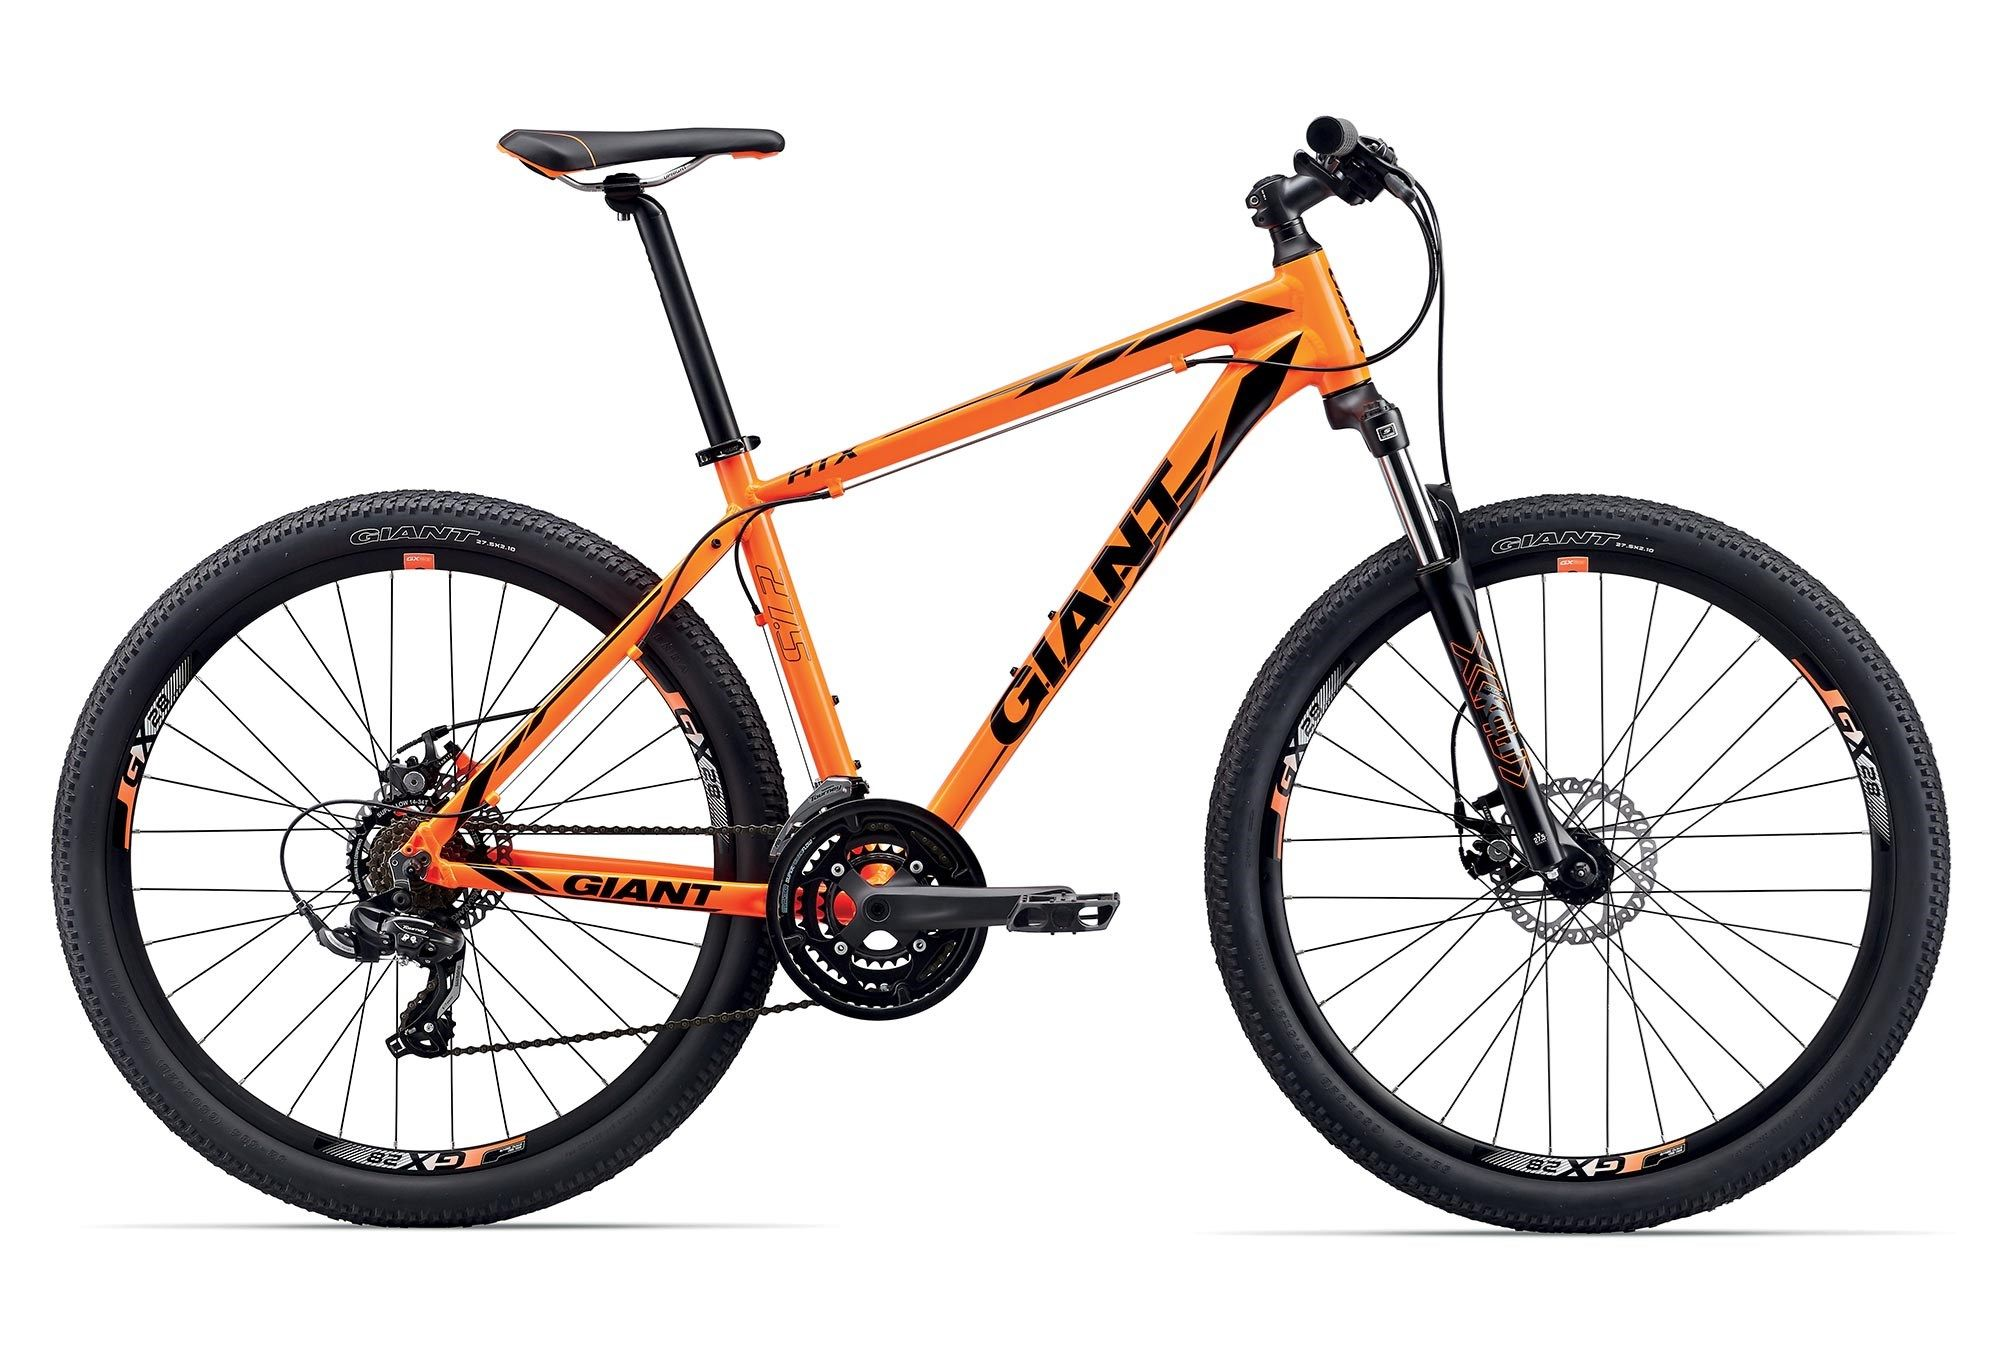 Giant Bicycles Giant Atx 2 Orange Black Giant Bicycles Bicycle Diamondback Mountain Bike